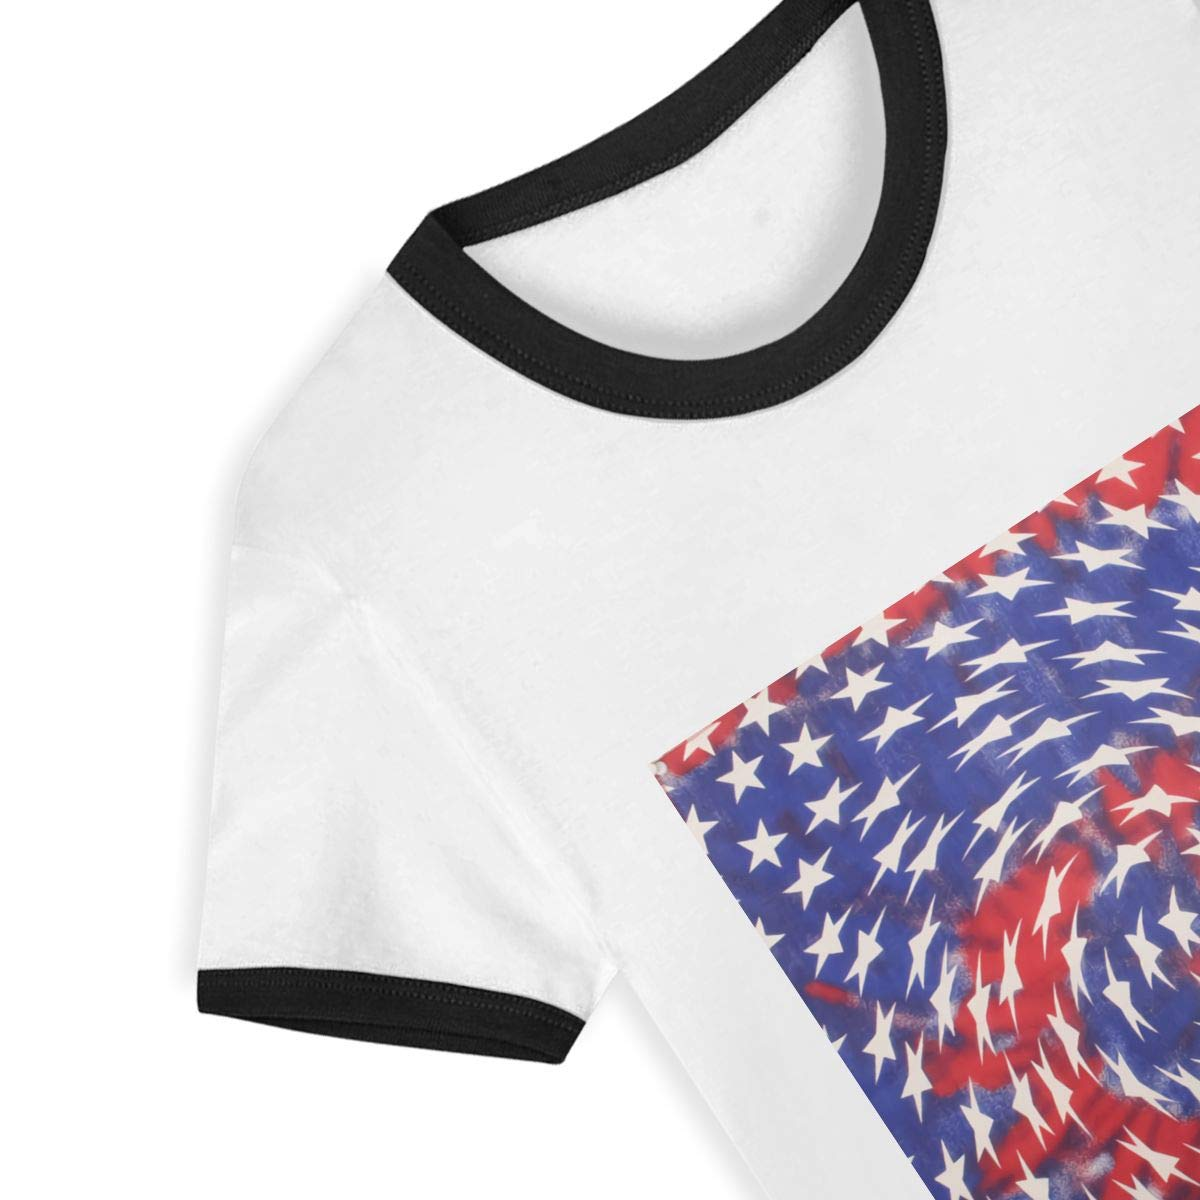 EVAGIBBONS USA American Flag Child Leisure Cute Fashion Life T Shirt